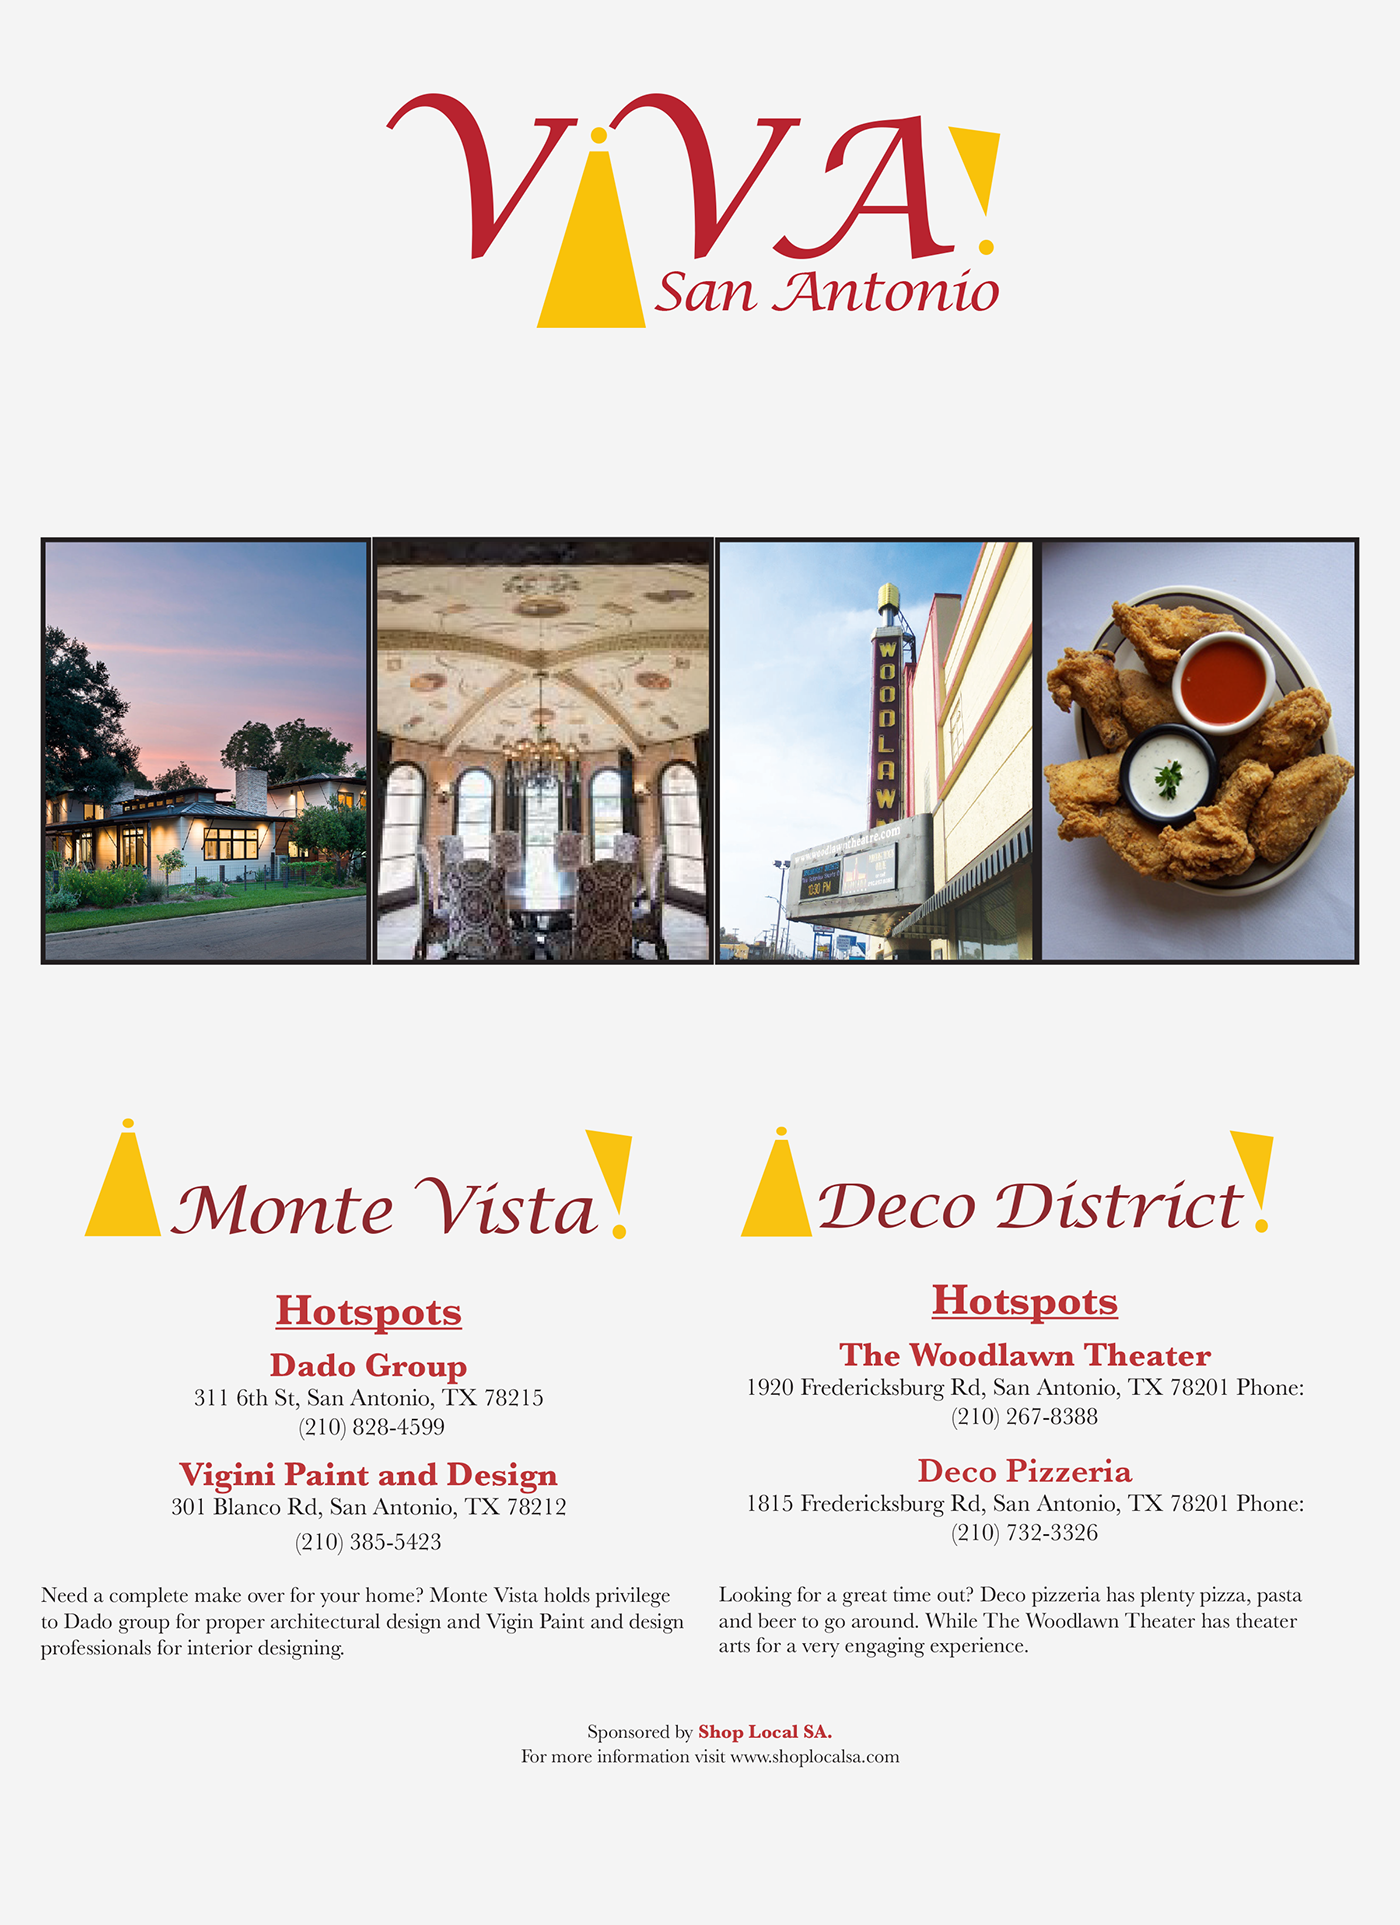 Viva San Antonio On Behance